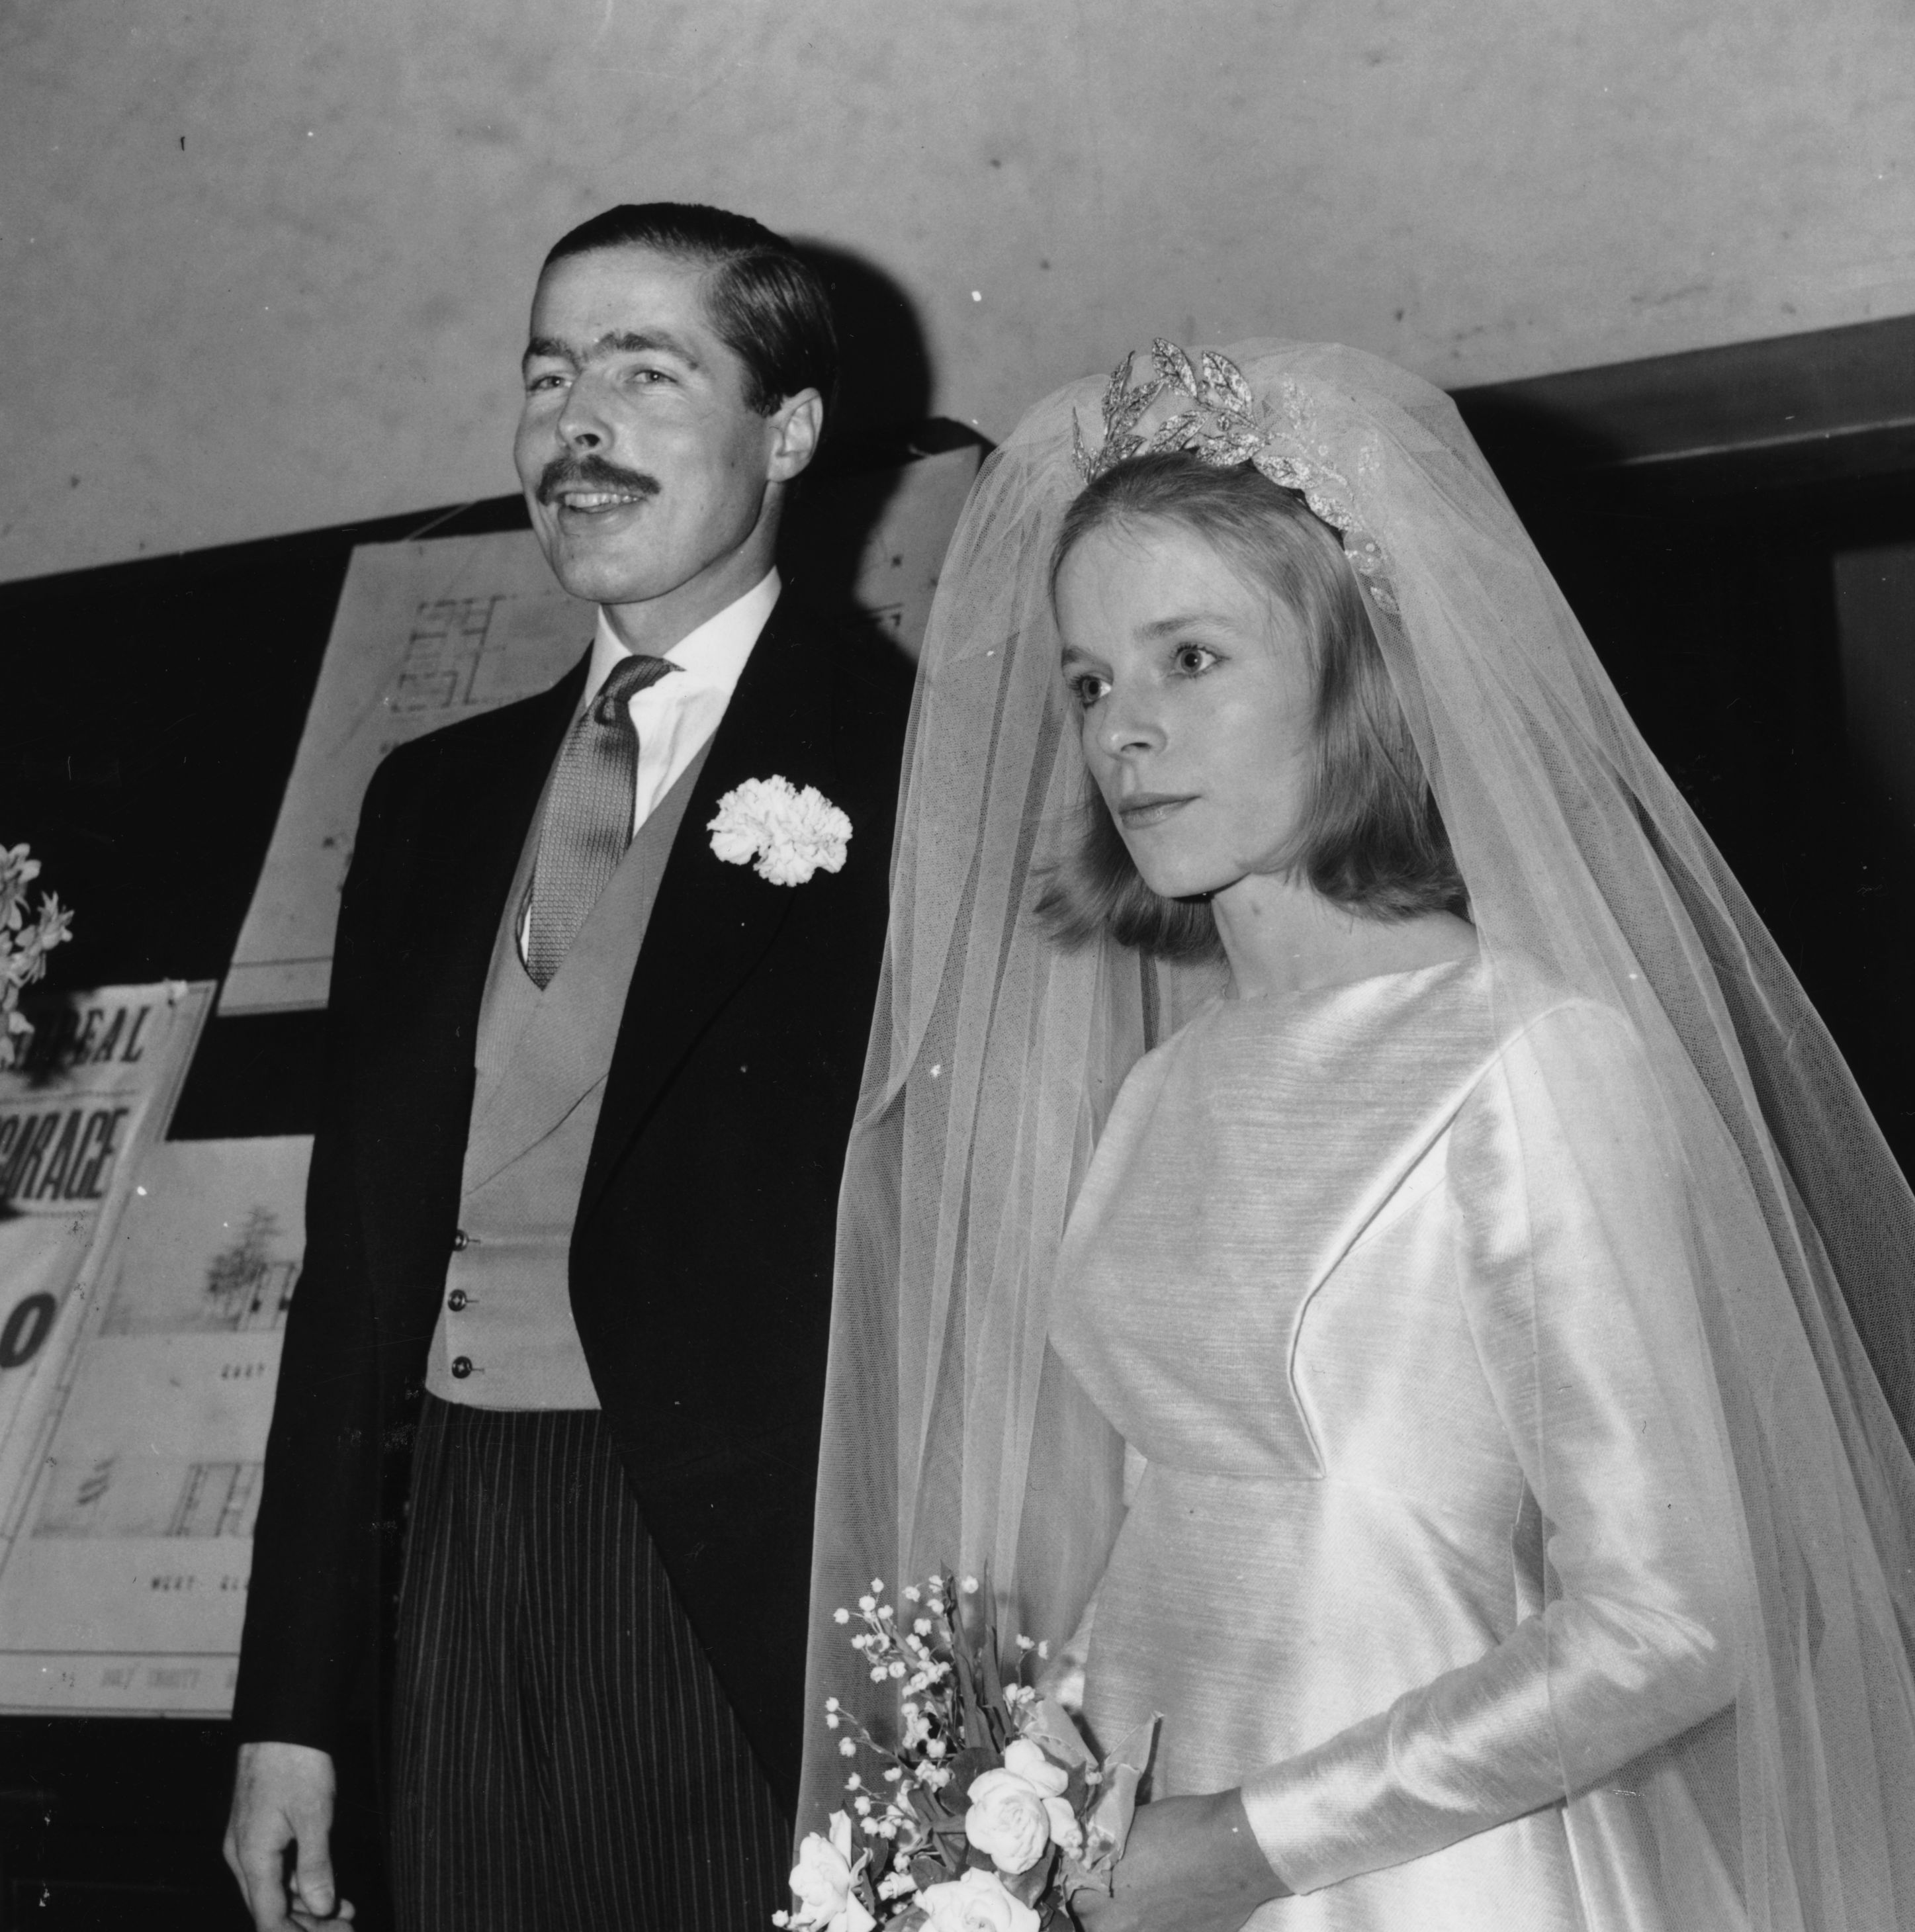 28th November 1963: John Richard Bingham, Earl of Lucan, and Veronica Duncan after their marriage. (Photo by Douglas Miller/Keystone/Getty Images)